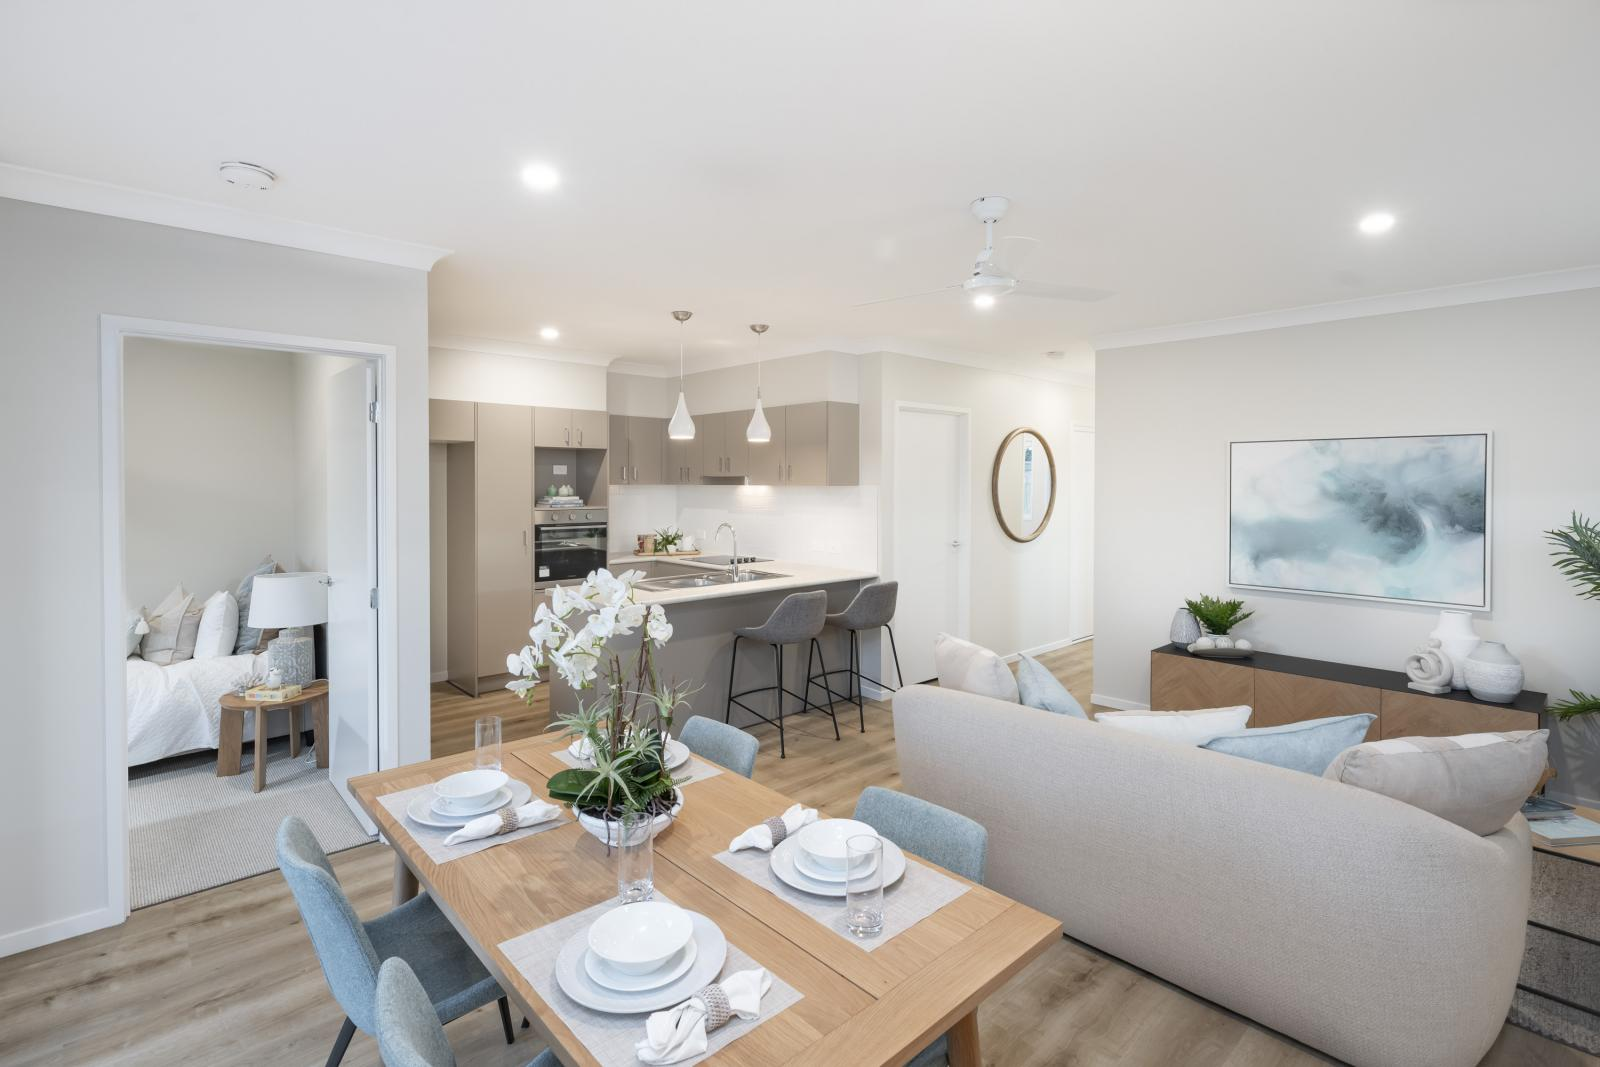 Interior of a new land lease home at Ingenia Chamber Pines south of Brisbane in Queensland